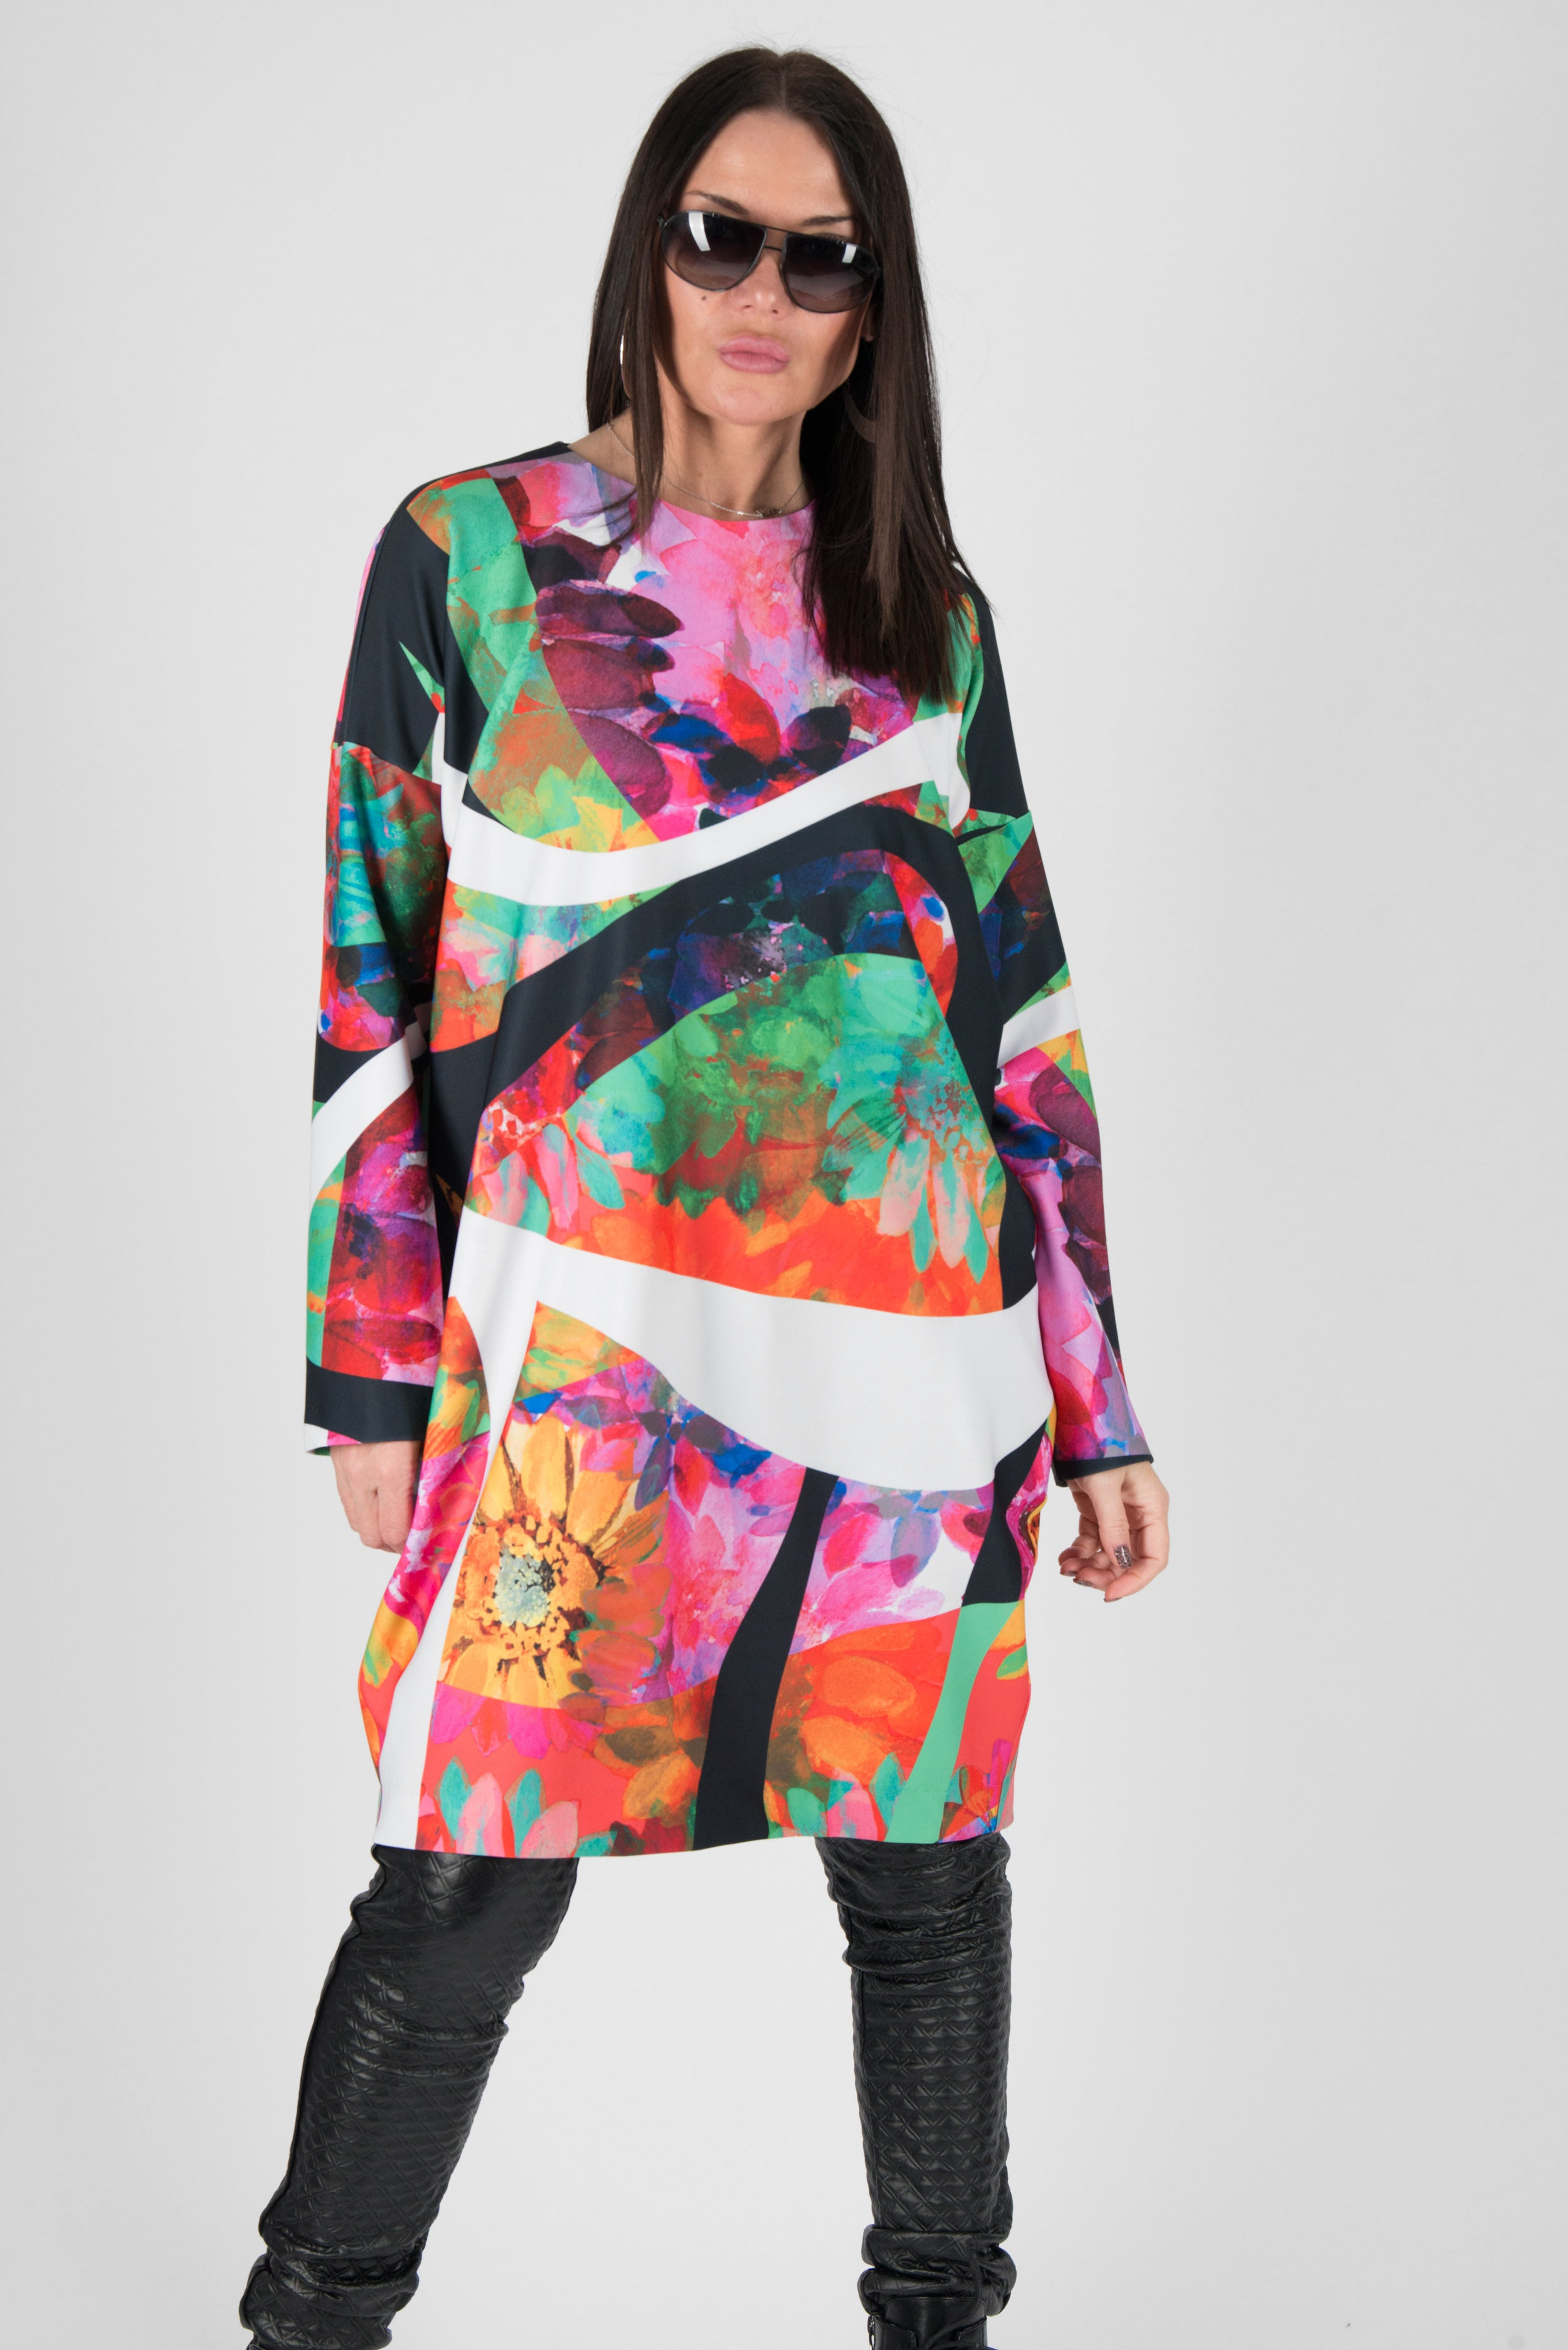 Midi Neoprene Dress with Long Sleeves, New Arrival